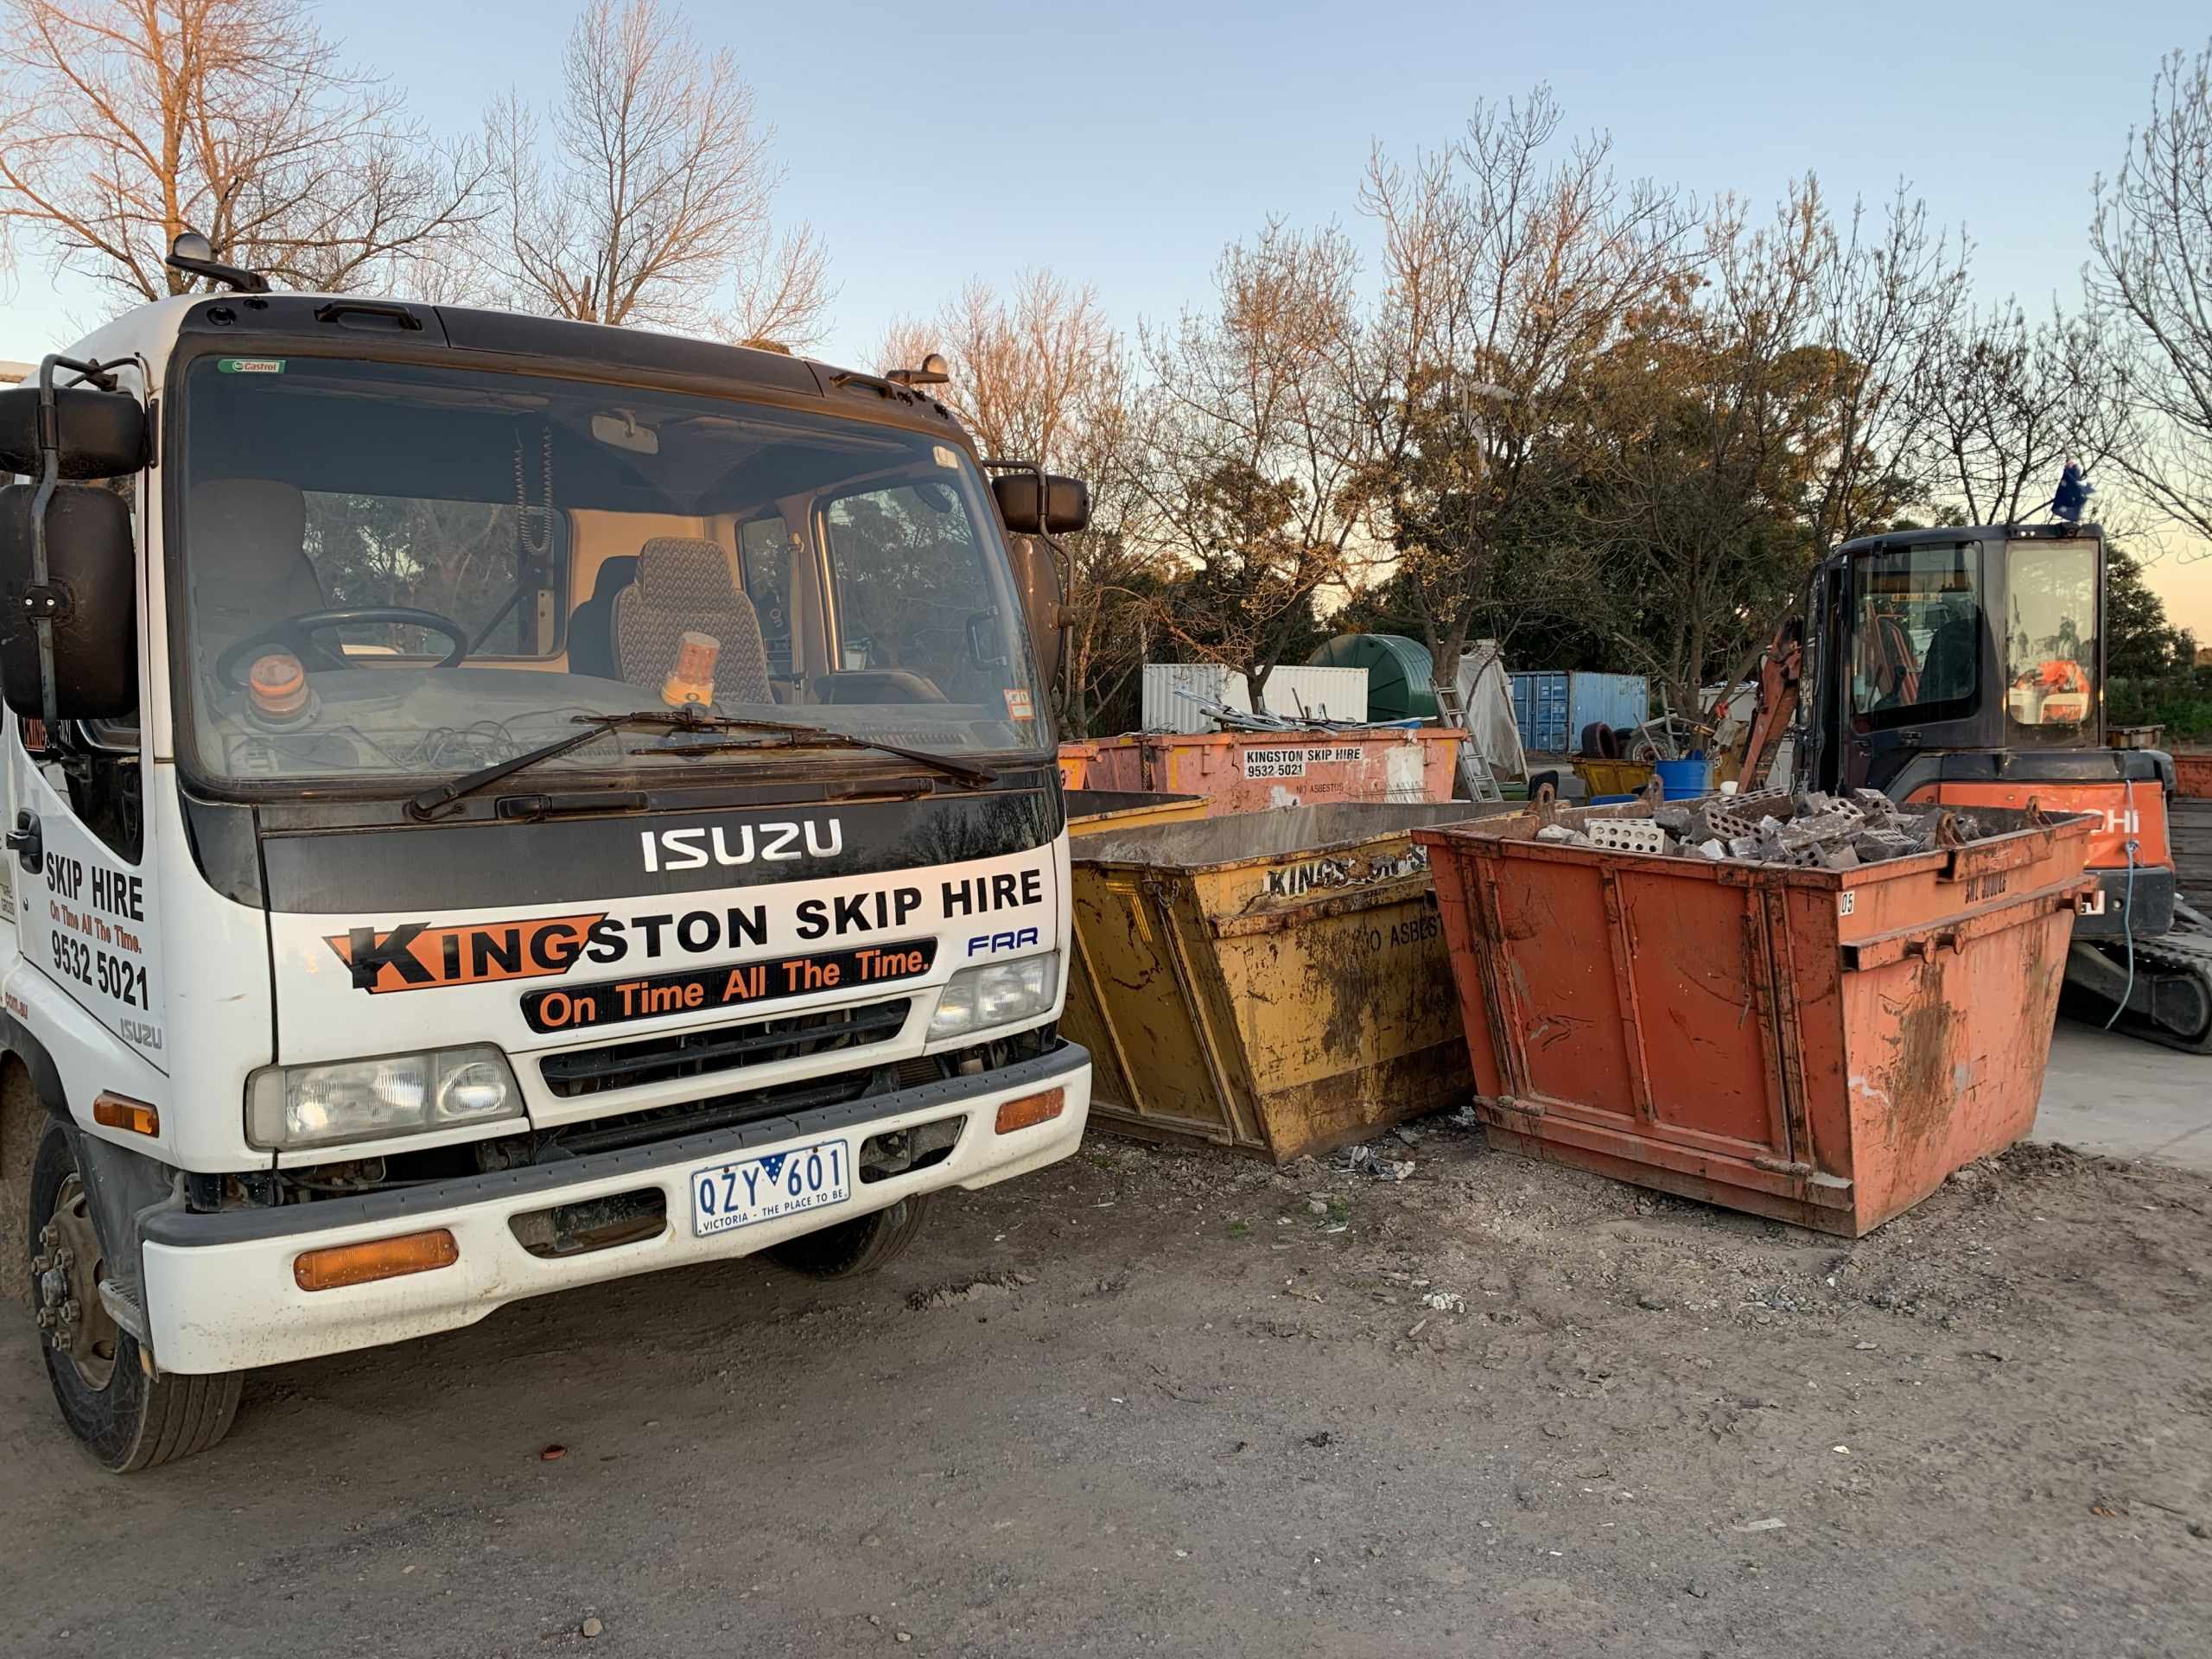 Kingston_skip_hire_yard